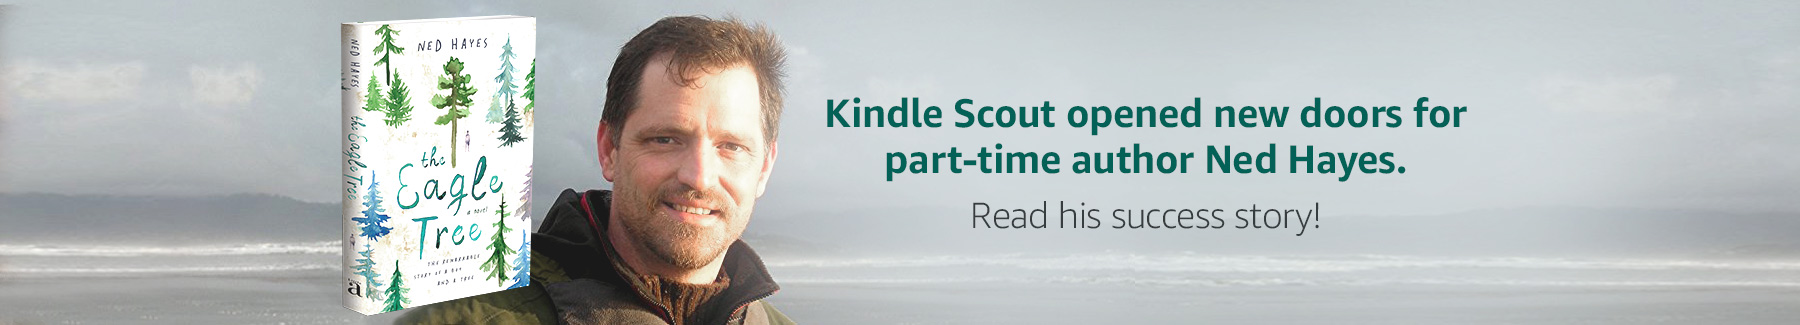 Kindle Scout opened new doors for part-time author Ned Hayes. Read his success story!